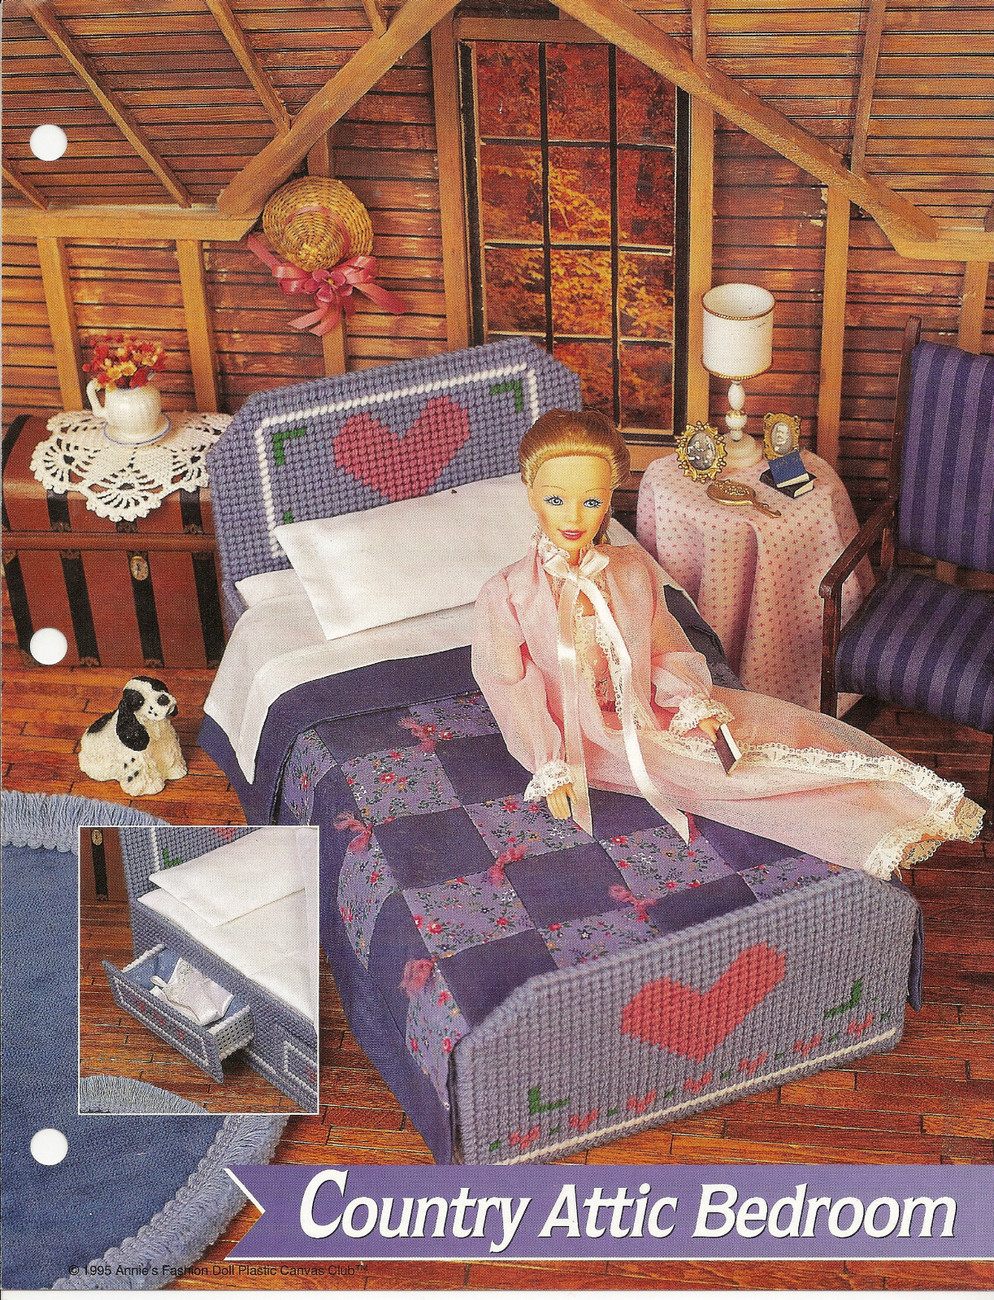 Annies Attic Patterns : Attic Bedroom Annies Attic Fashion Doll Plastic Canvas Club Pattern ...